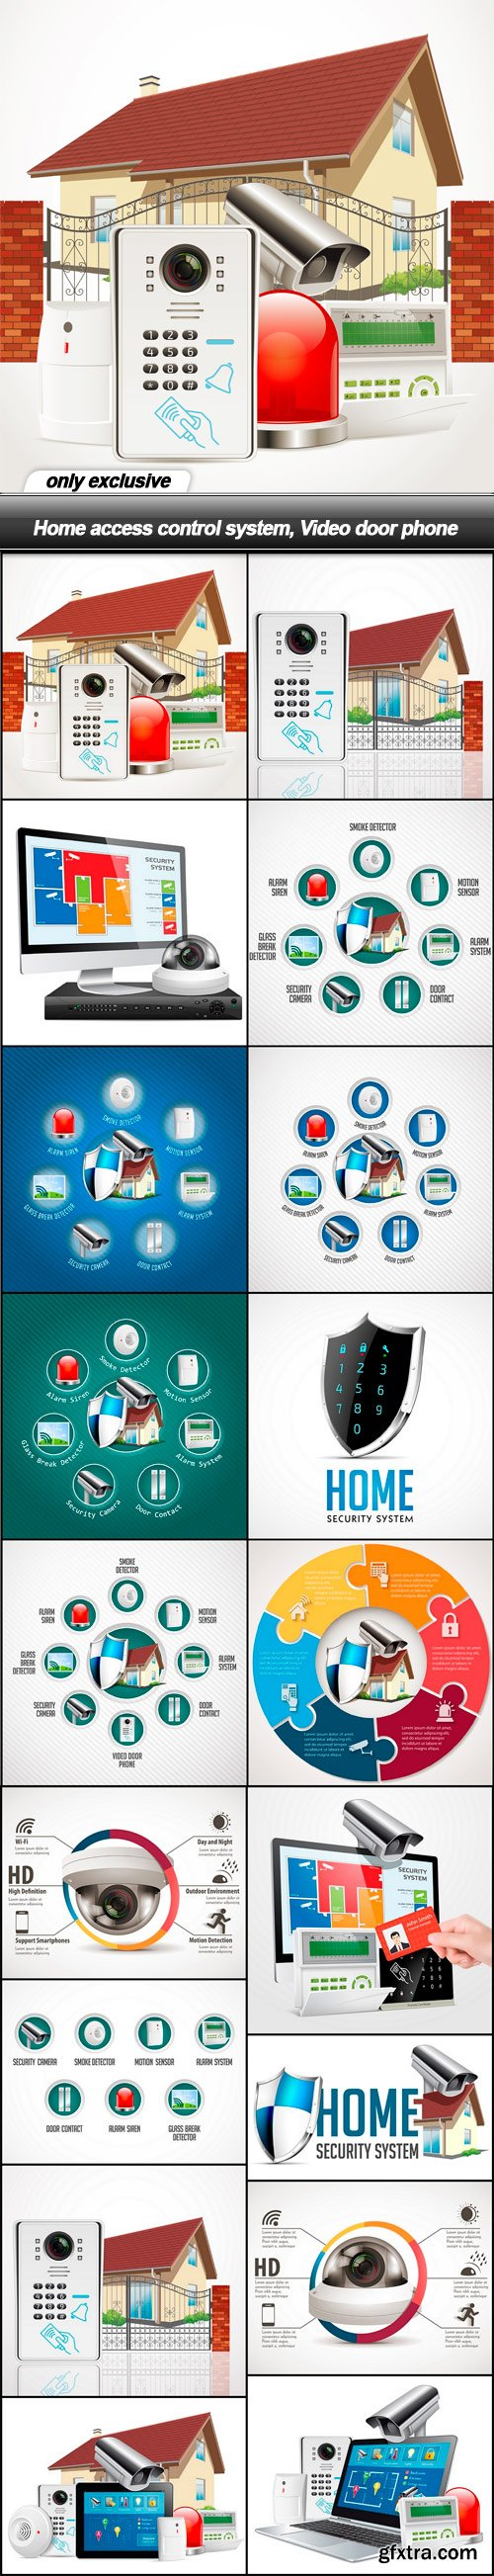 Home access control system, Video door phone - 18 EPS